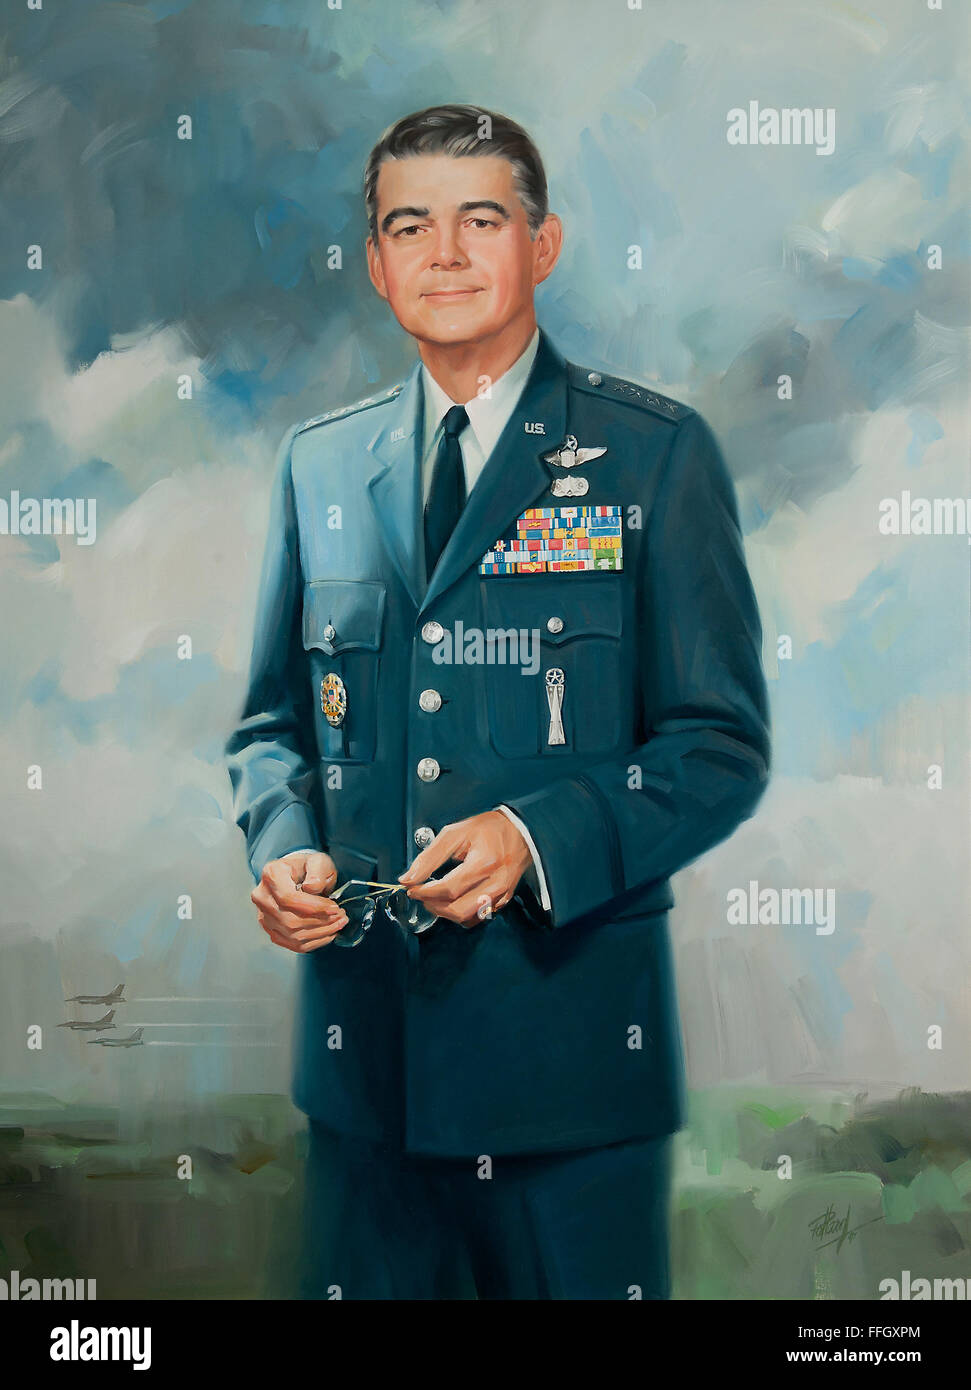 Michael J. Dugan July 1, 1990 - September 17, 1990  Michael J. Dugan graduated from the U. S. Military Academy in - Stock Image